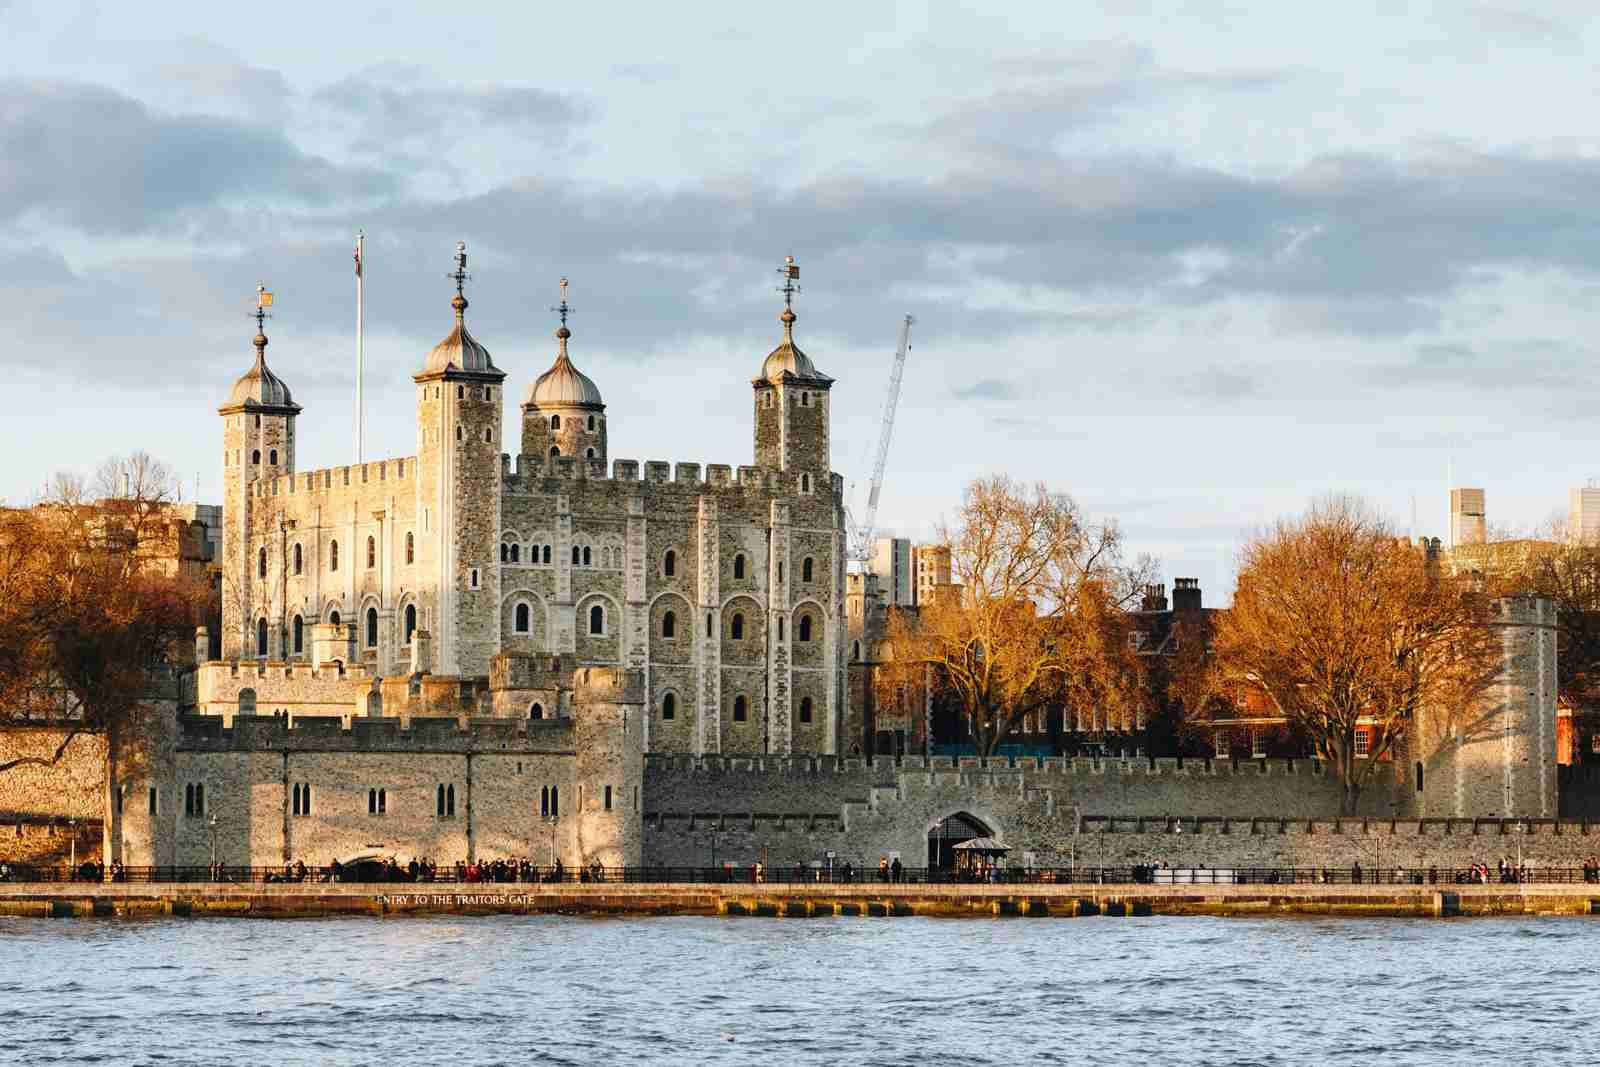 The Tower of London. (Photo by DaLiu/Getty Images